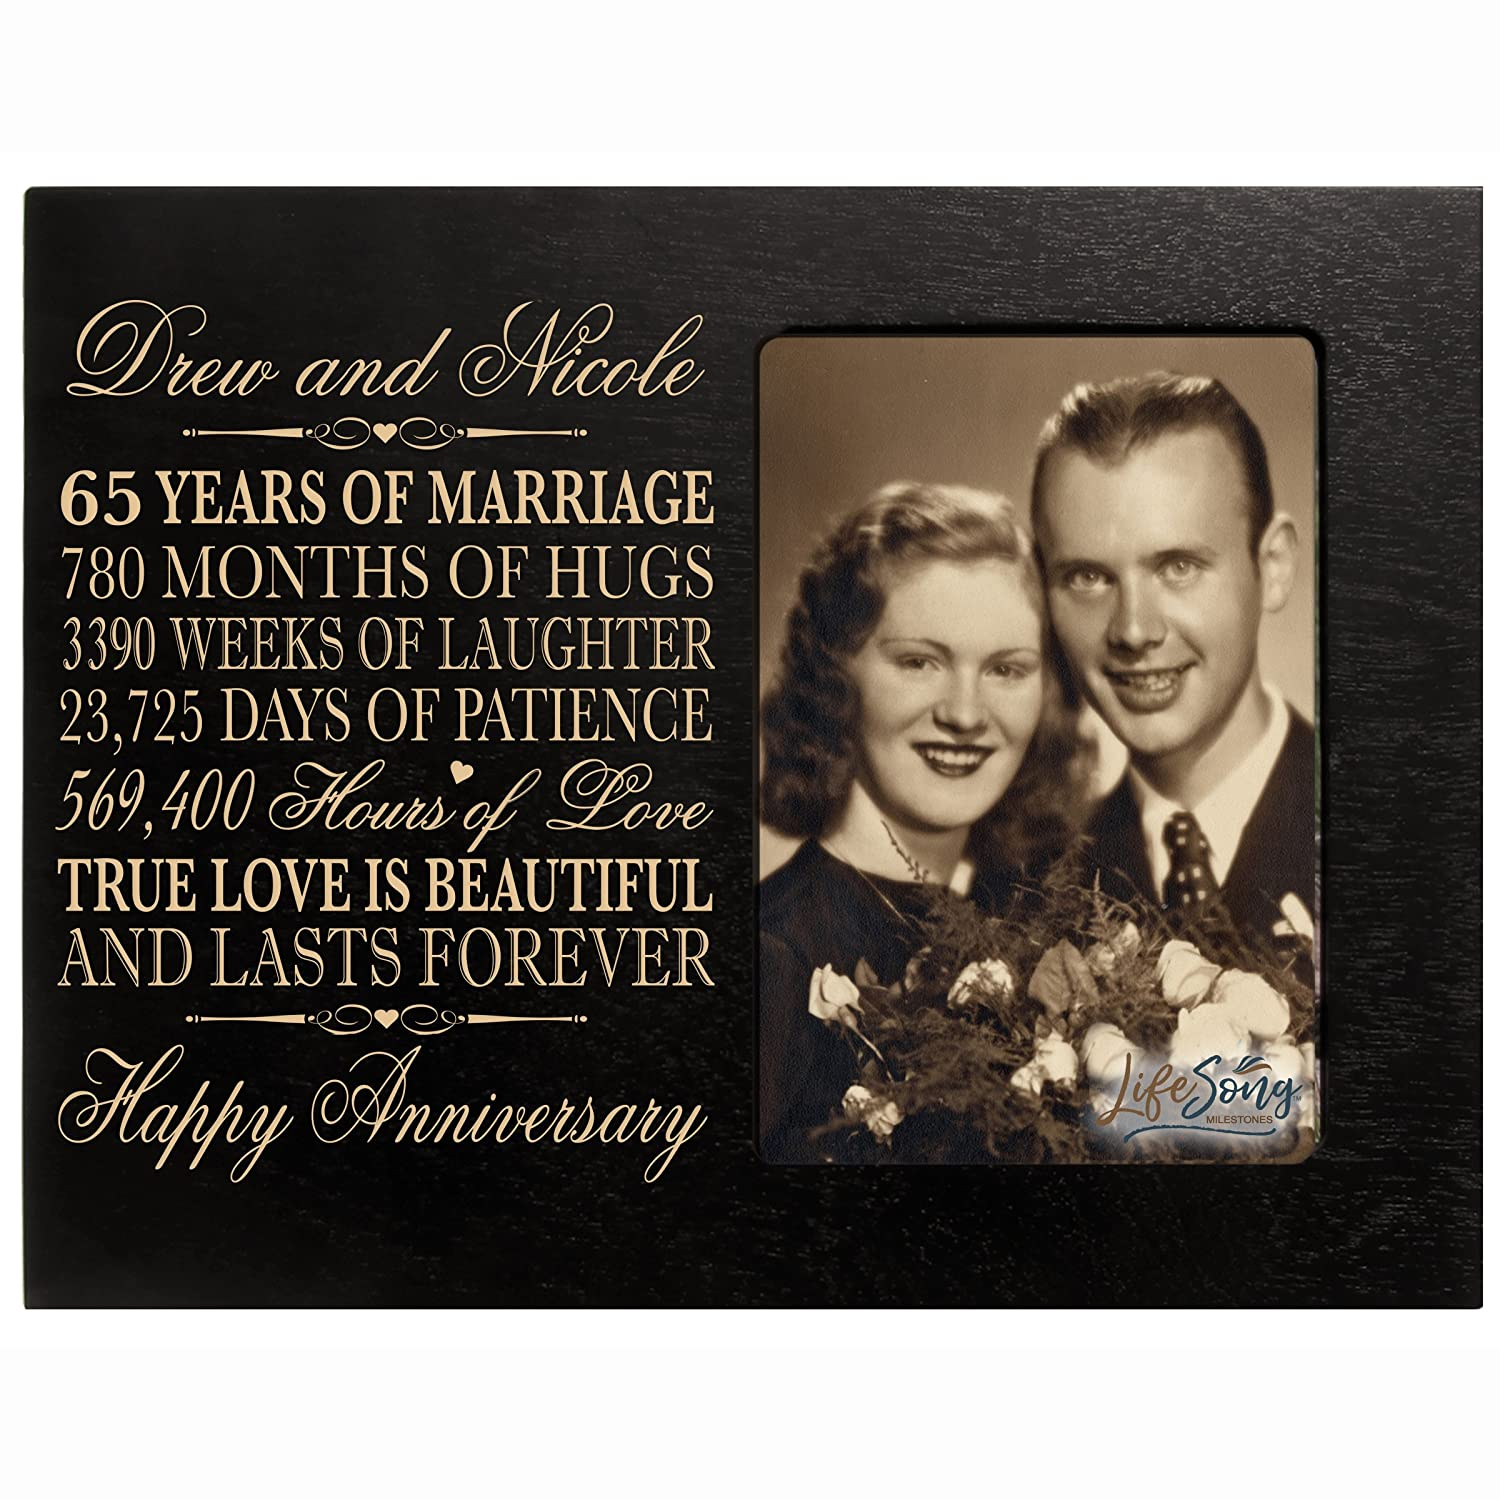 Wedding Gifts By Years: Personalized 65th Year Wedding Anniversary Gift For Couple